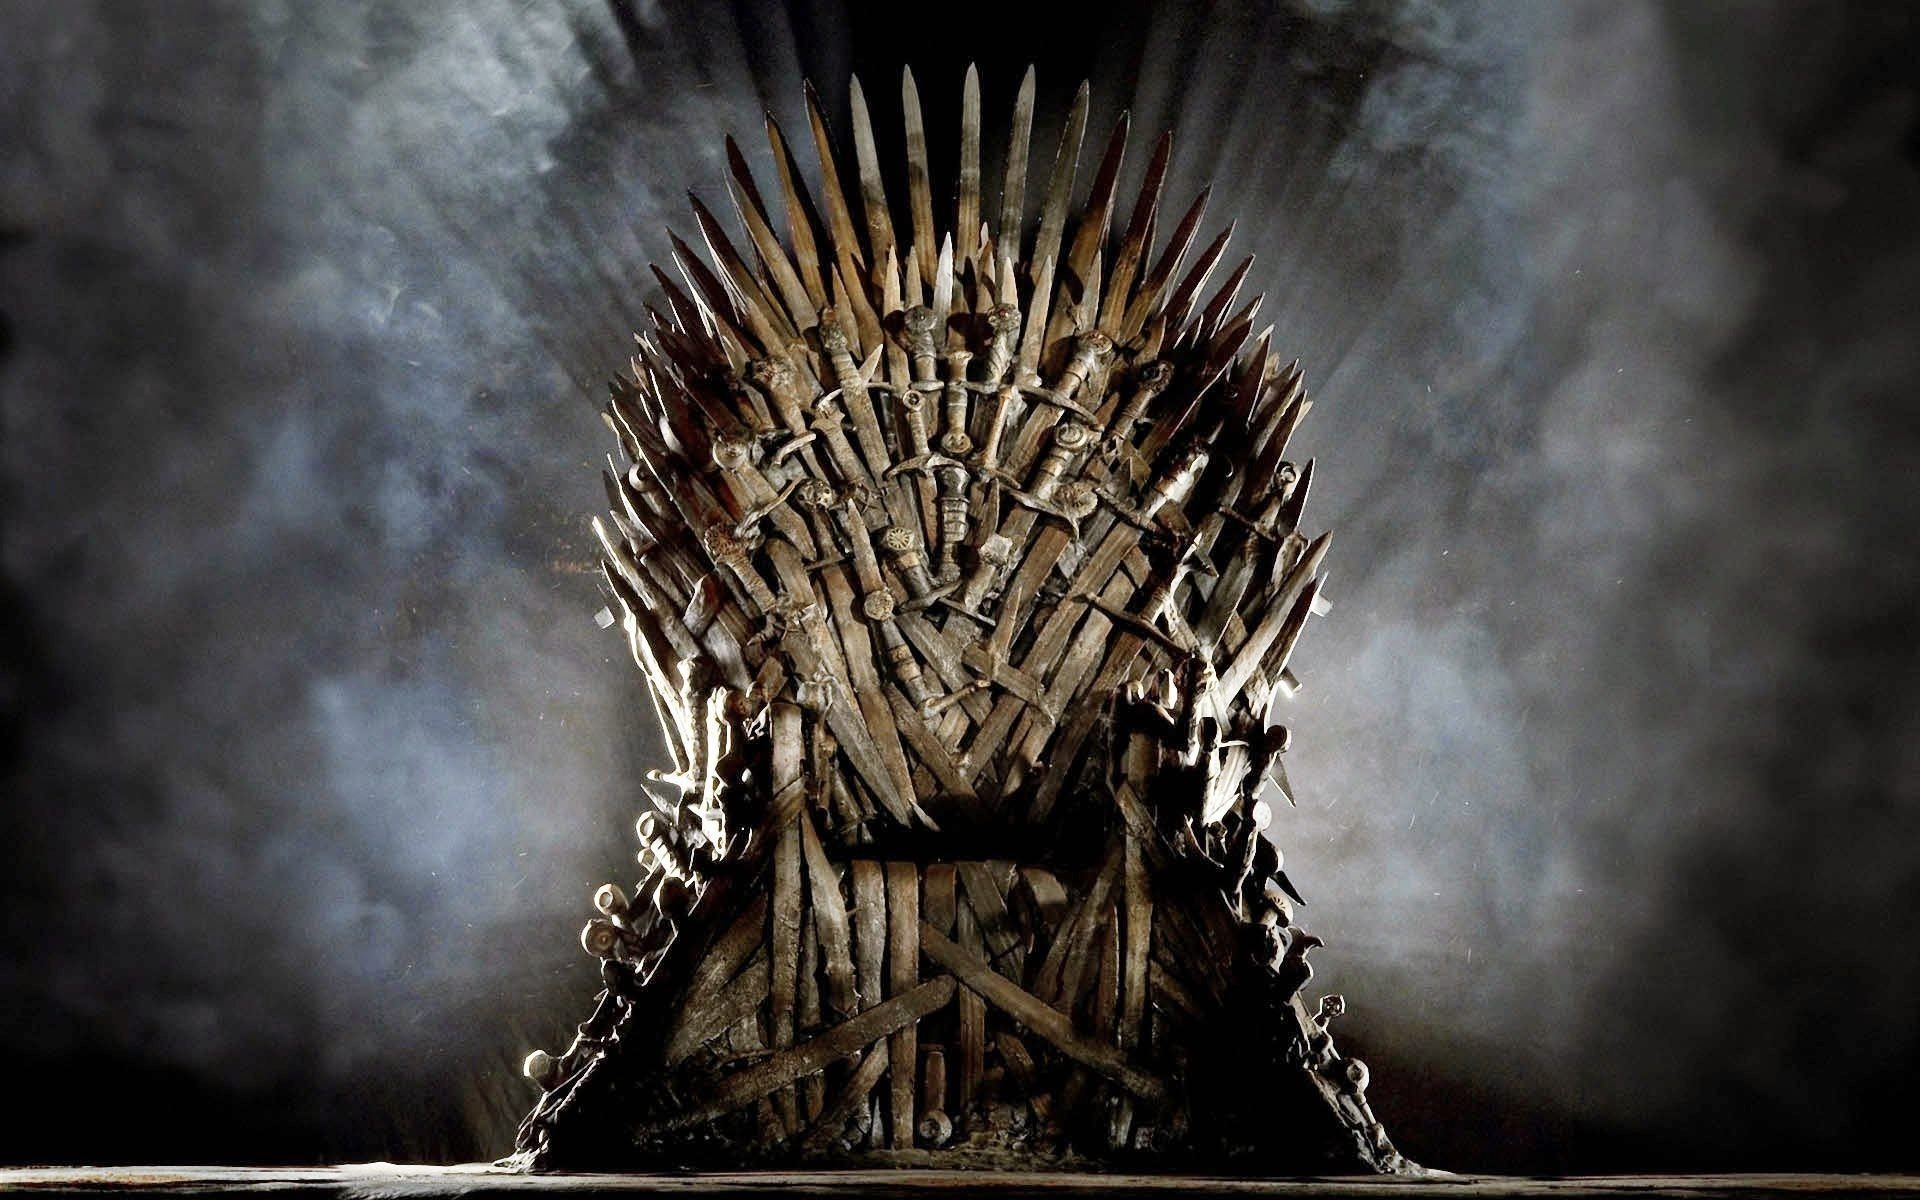 4K Game of Thrones Wallpaper 66 images 1920x1200